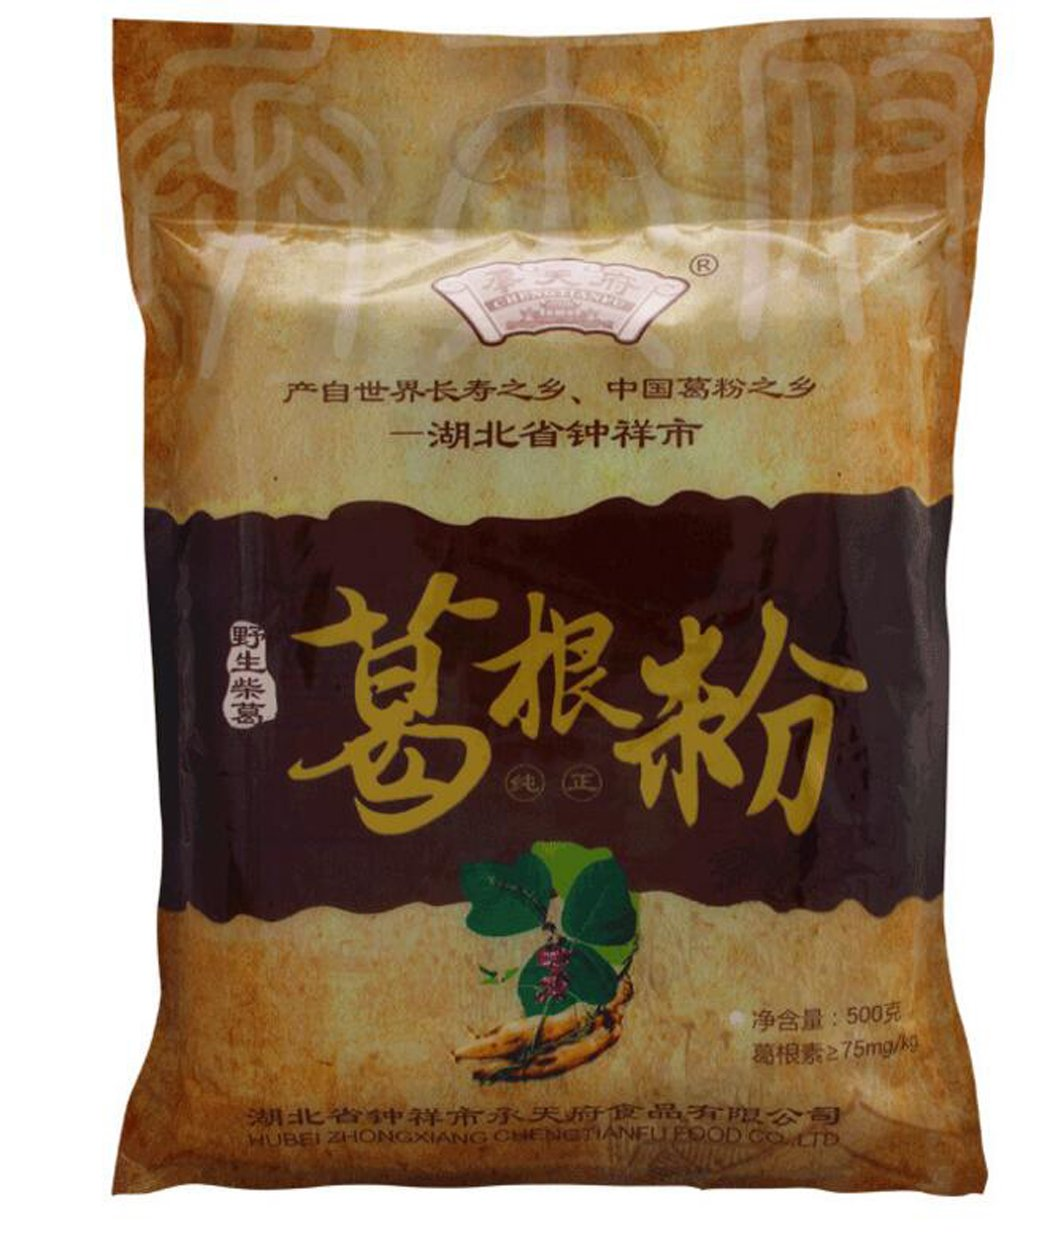 Helen Ou@ Hubei Specialty: Wild Root of Kudzu Vine Powder Pure Natural and Organic Arrowroot Meal Replacement Powder